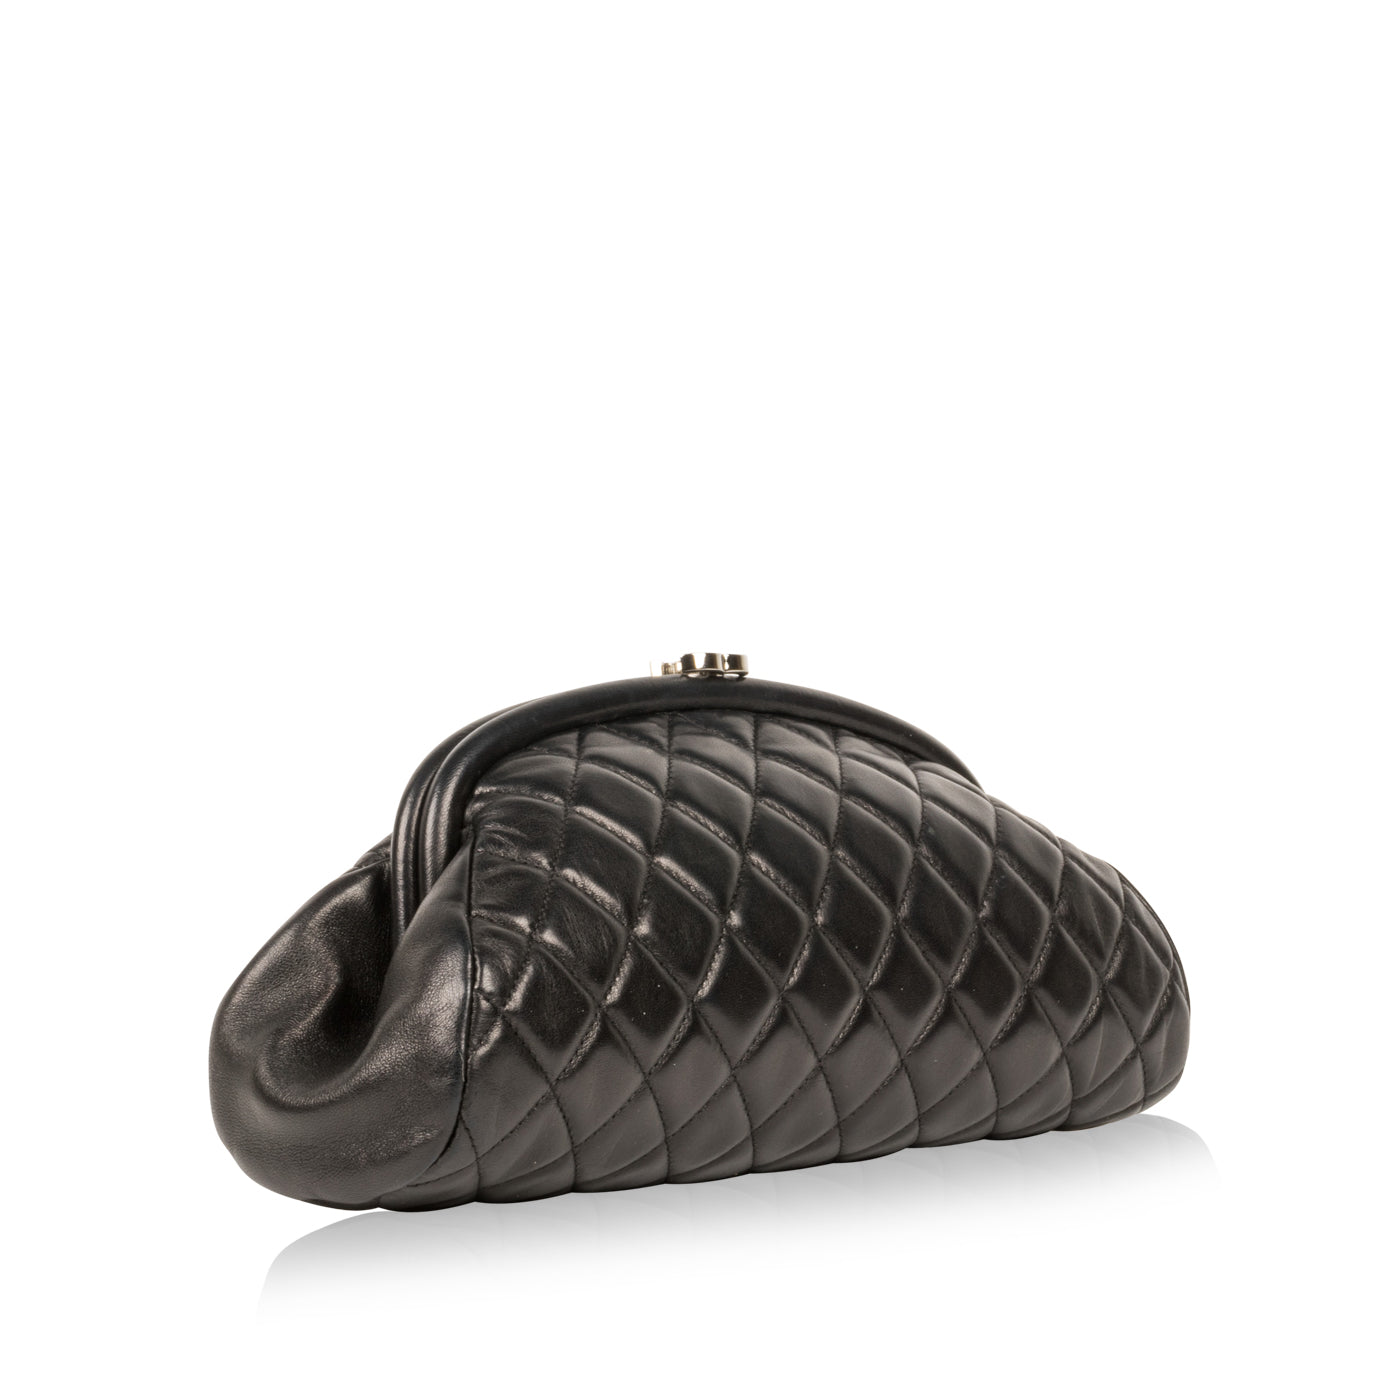 0295be7dbe24 Chanel Quilted Timeless Clutch   Bagista